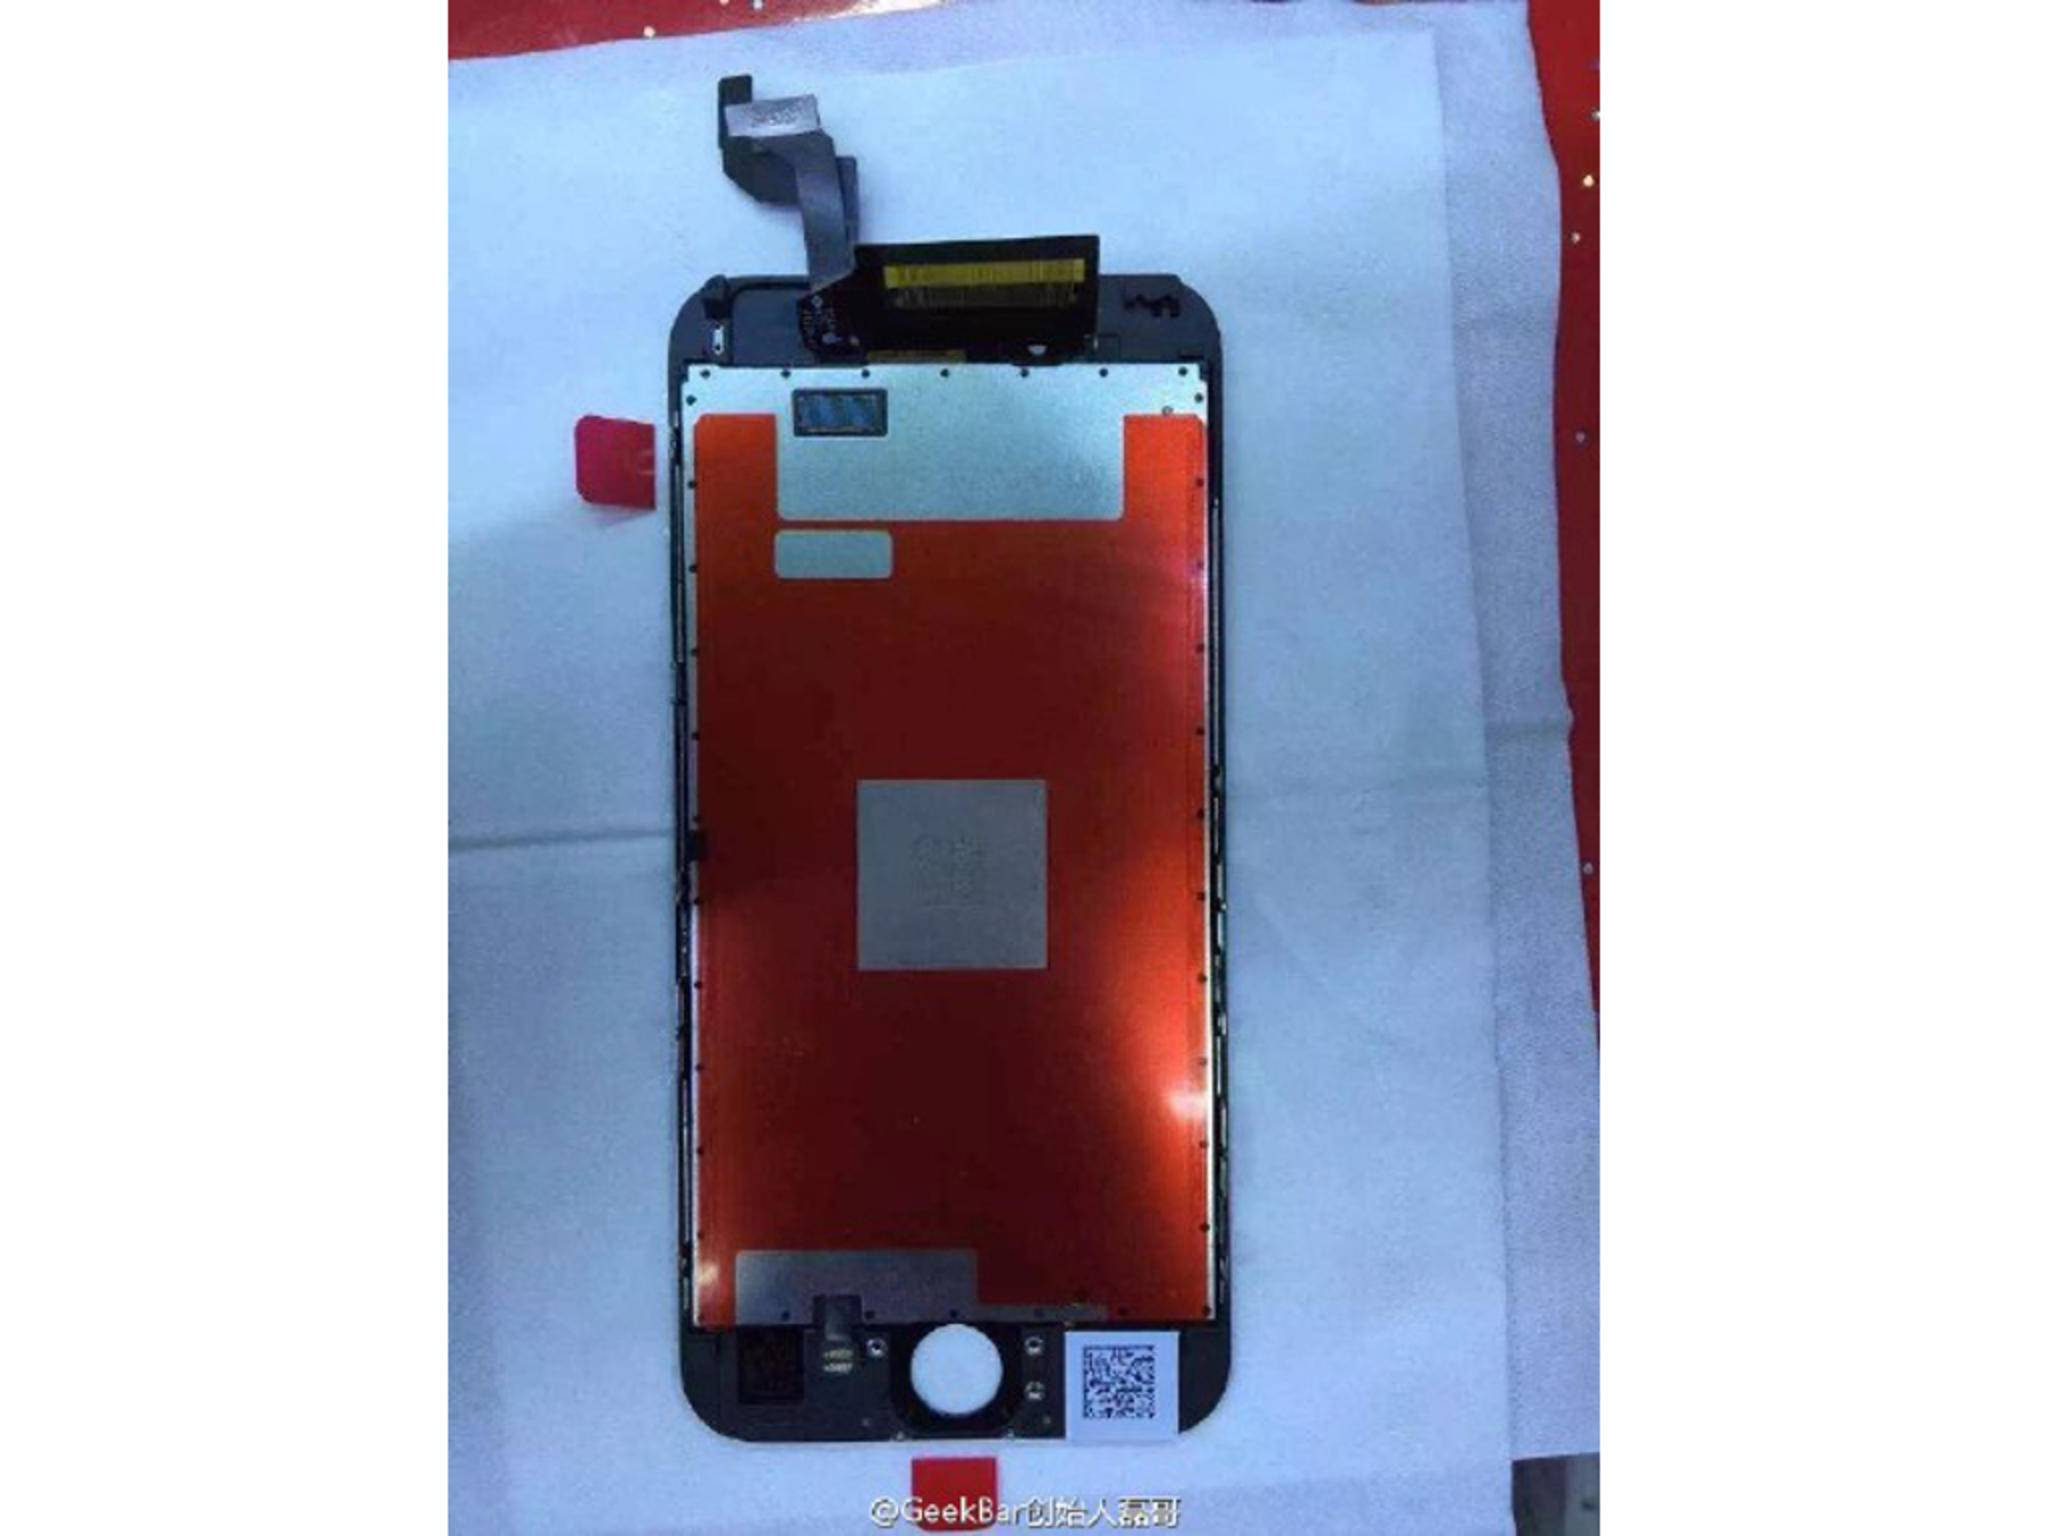 Angebliches Display des iPhone 6s.